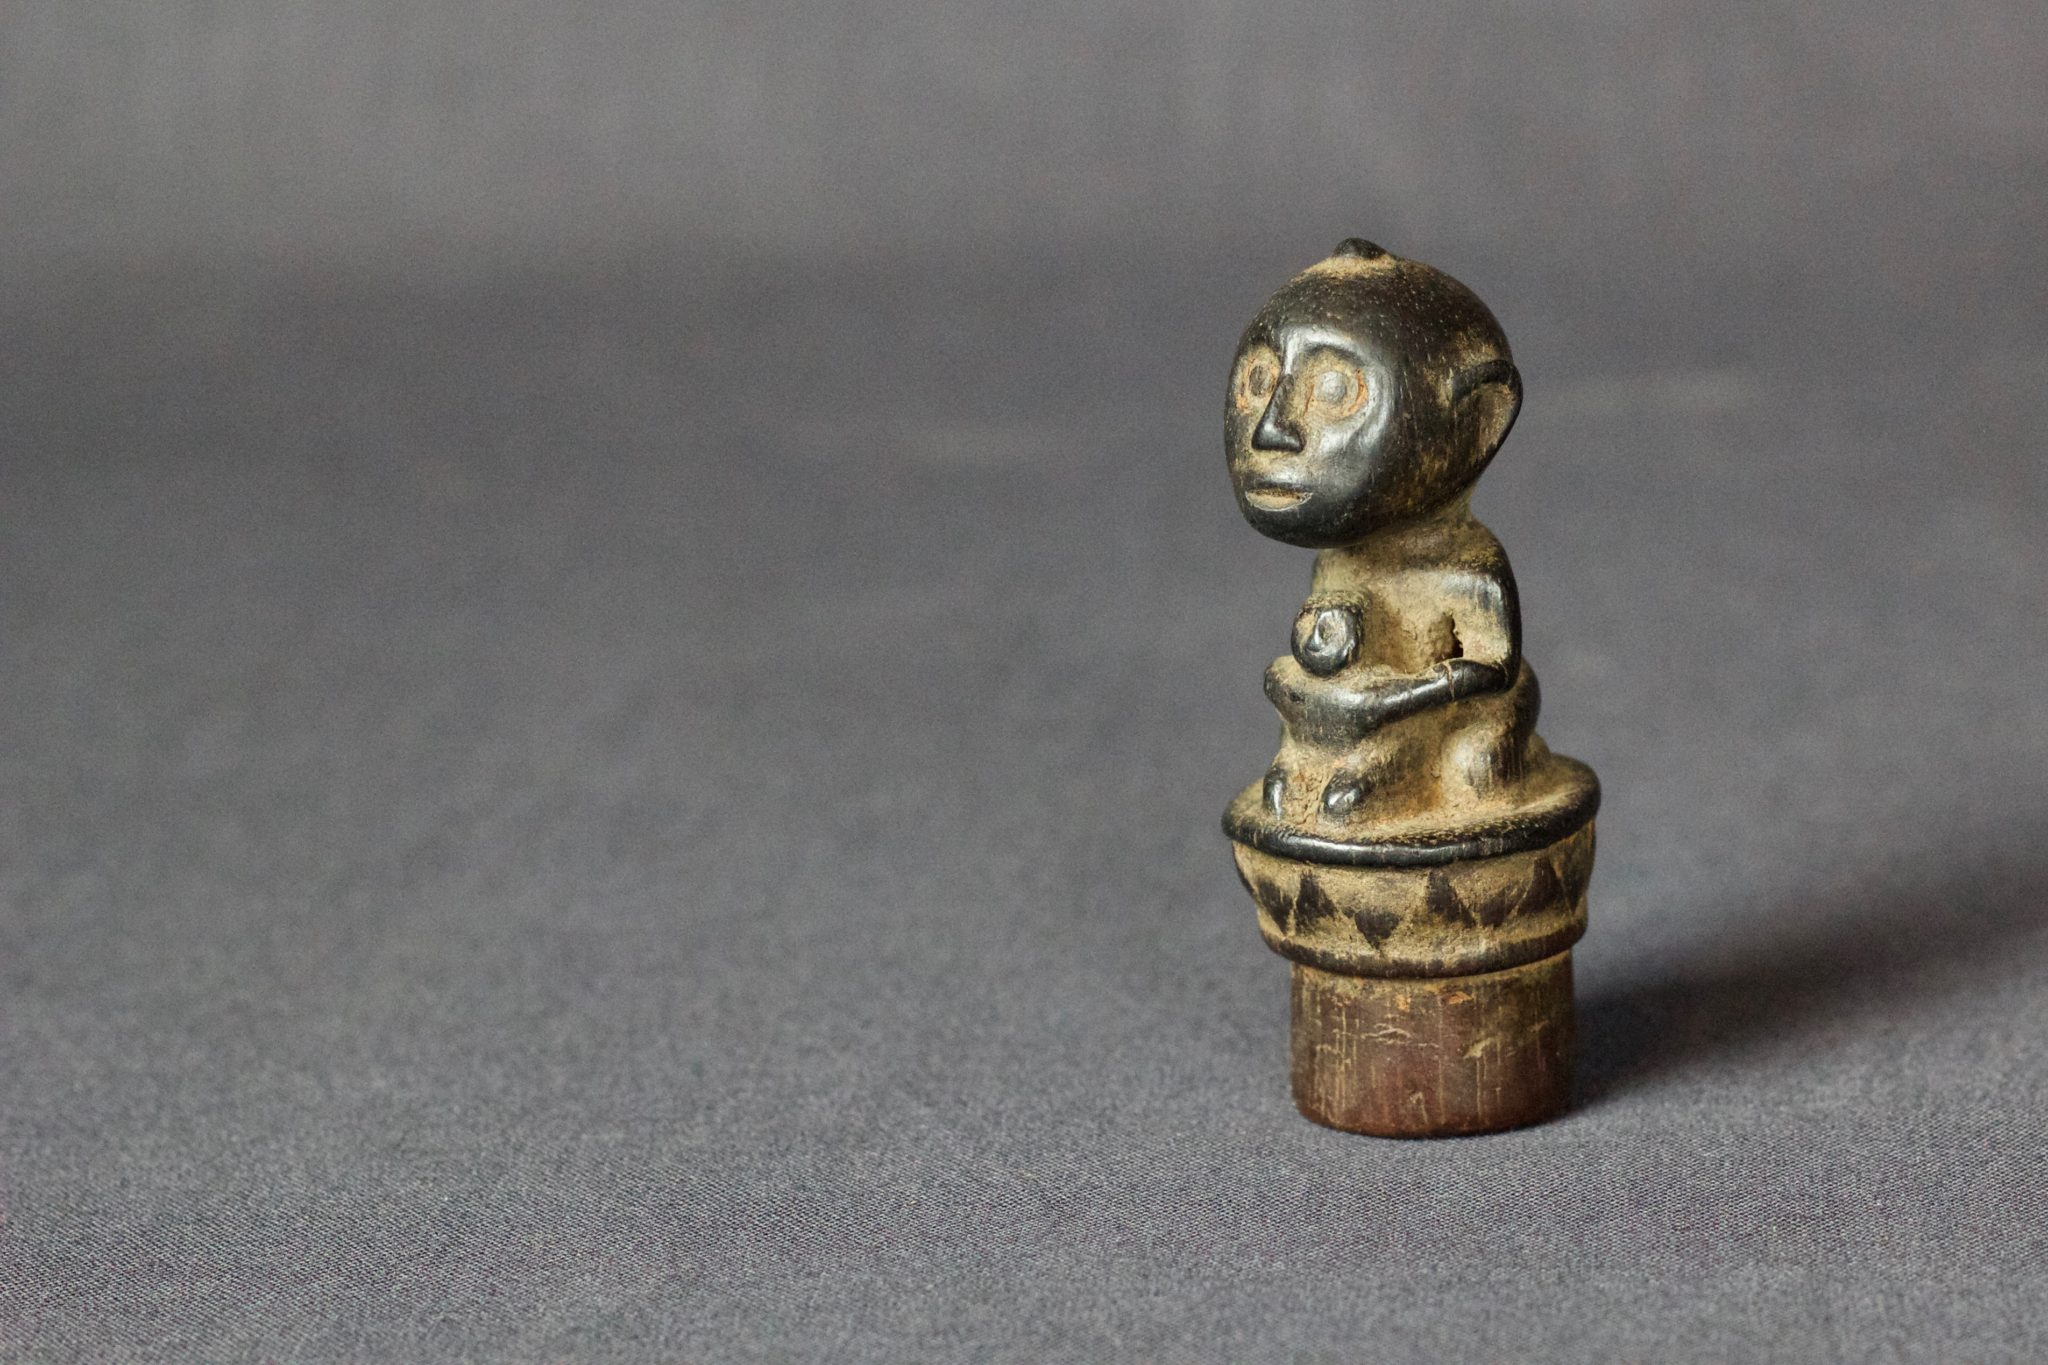 """Shaman Magic Medicine Bottle Stopper, East Sumba Island, Lesser Sunda Islands, Indonesia Mid 19th c, Wood, patinated with use and age. Talisman figure with child, used empower the healing medicine in the bottle. 3"""" x 1 ¼"""" x 1 ¼"""", $80."""